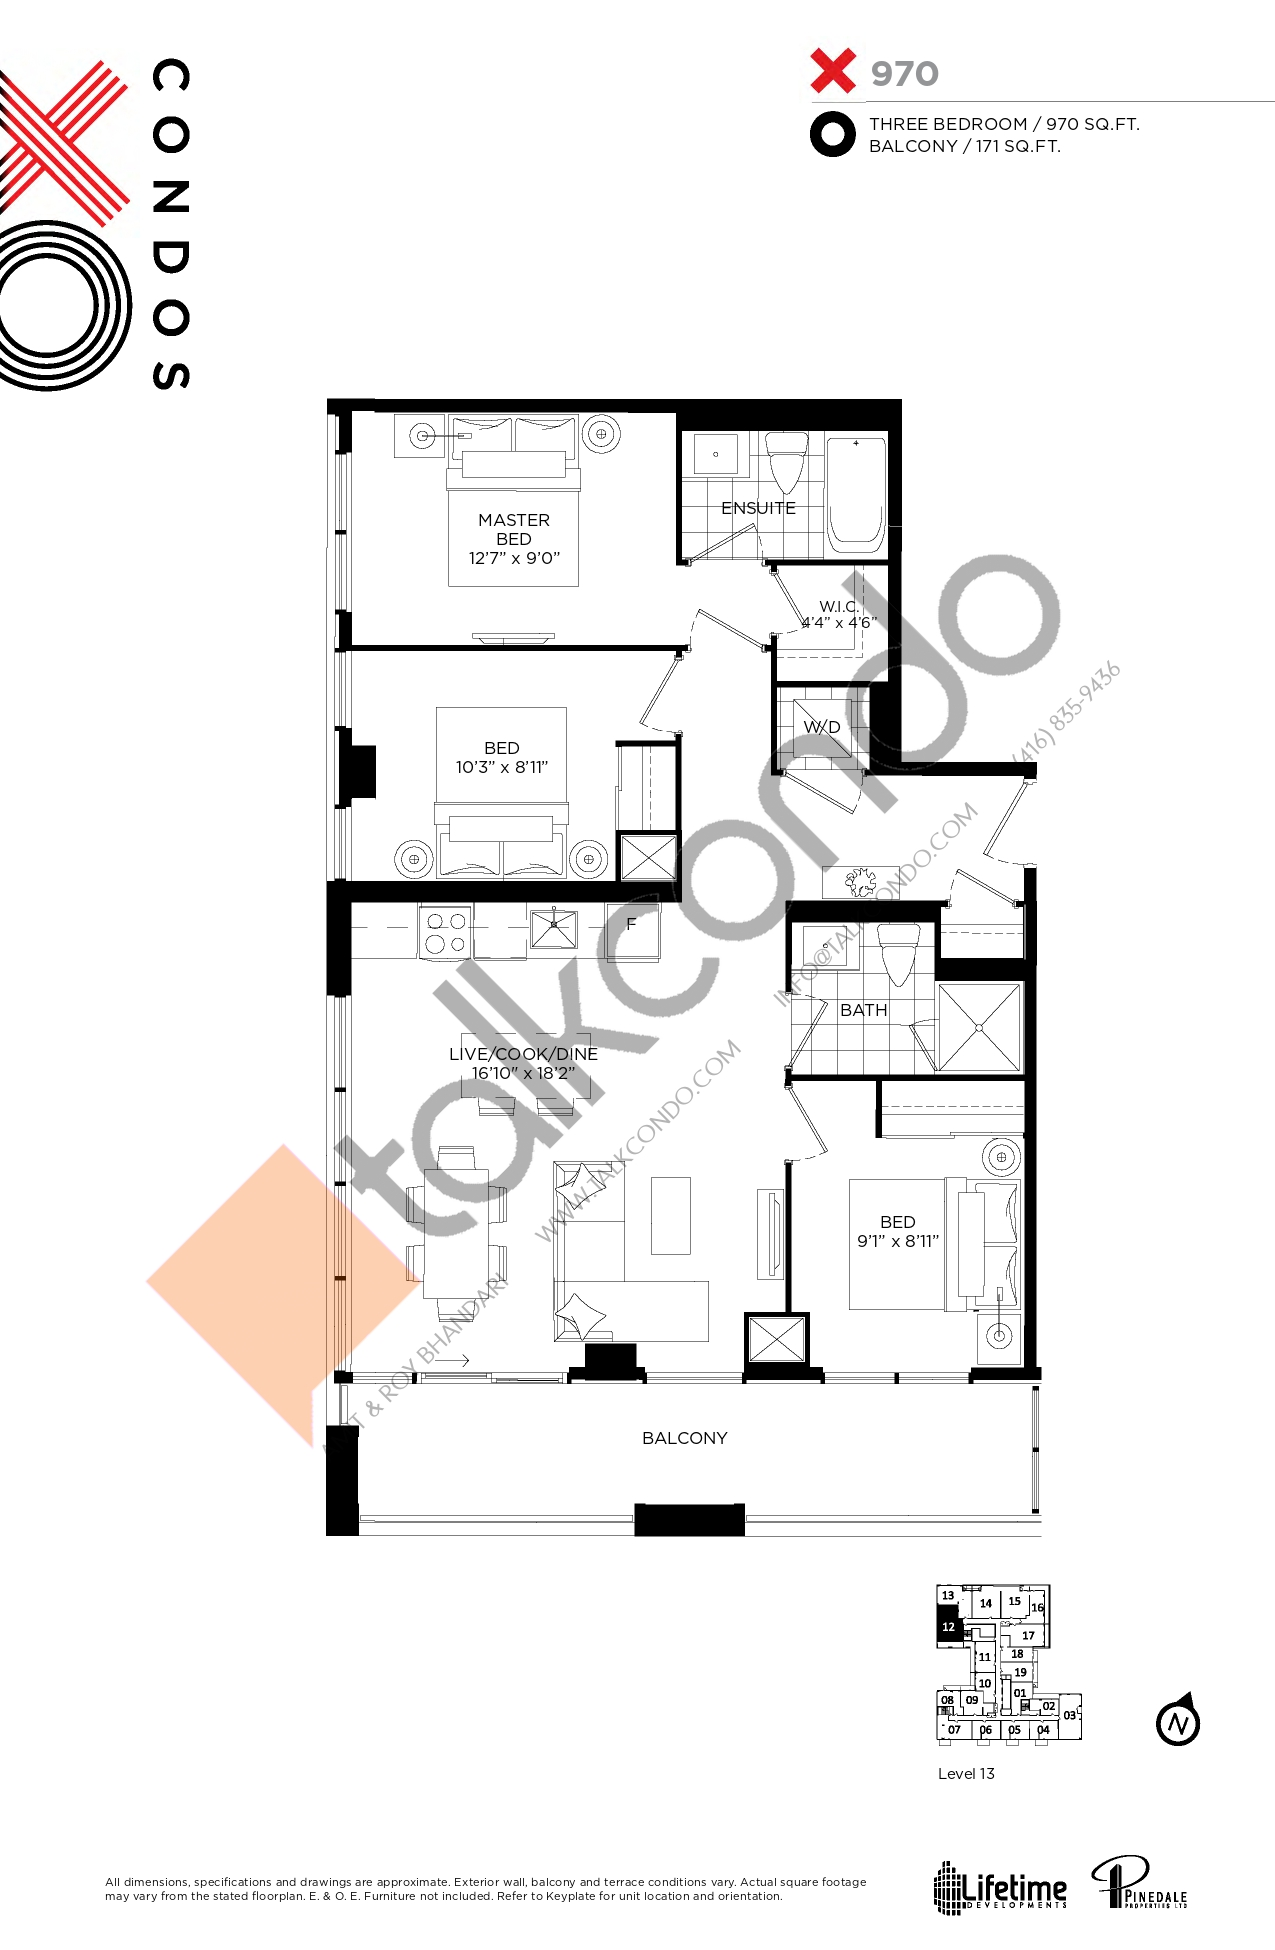 X970 Floor Plan at XO Condos - 970 sq.ft